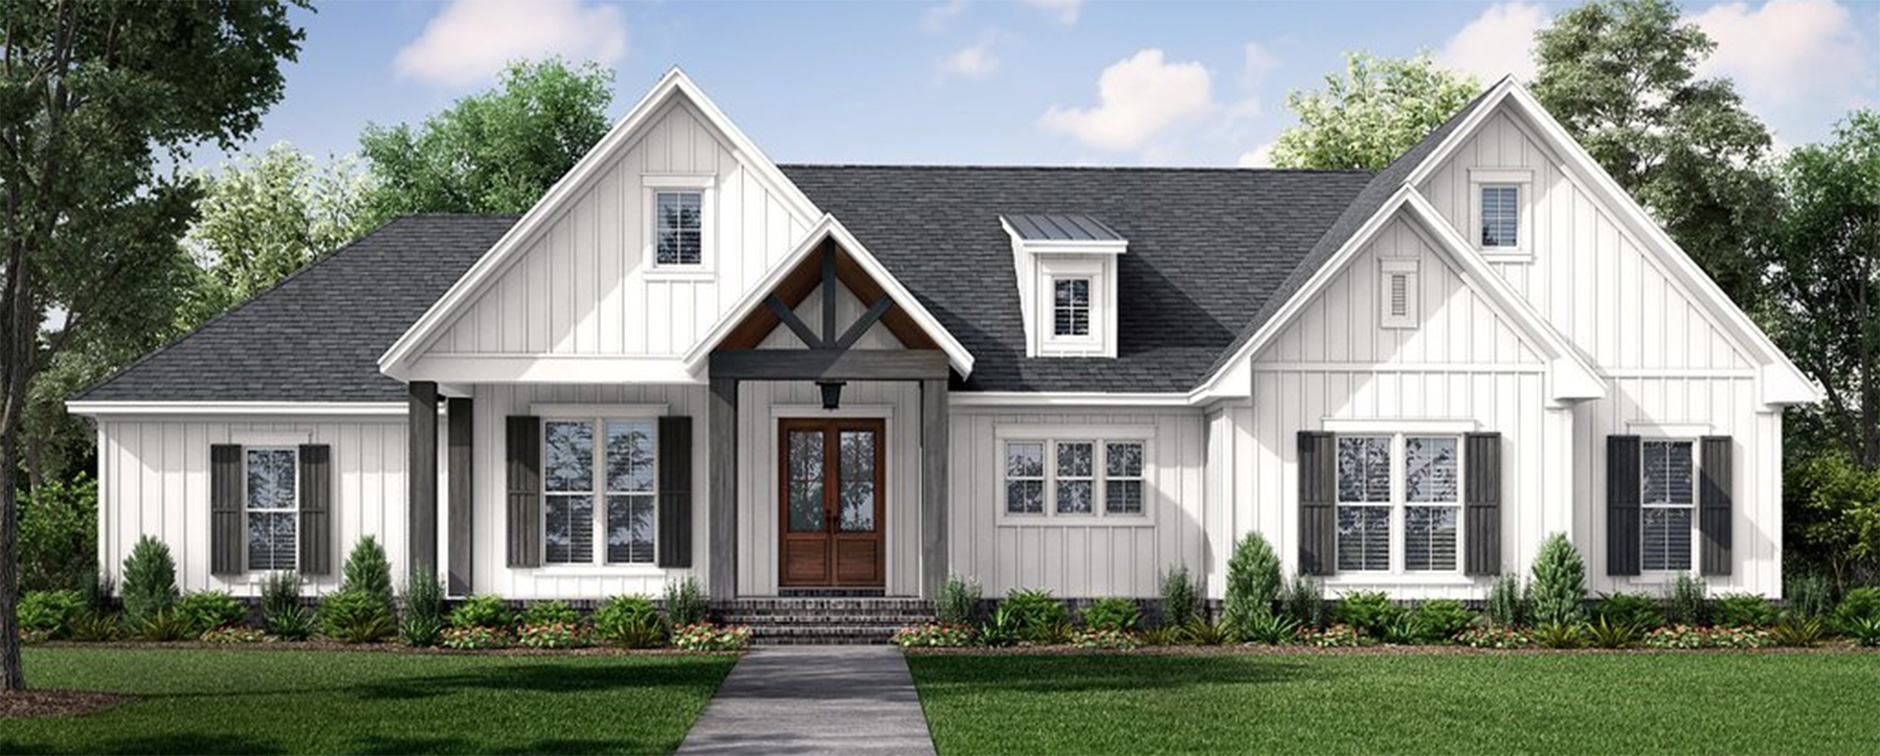 New One Story House Plan 430-233